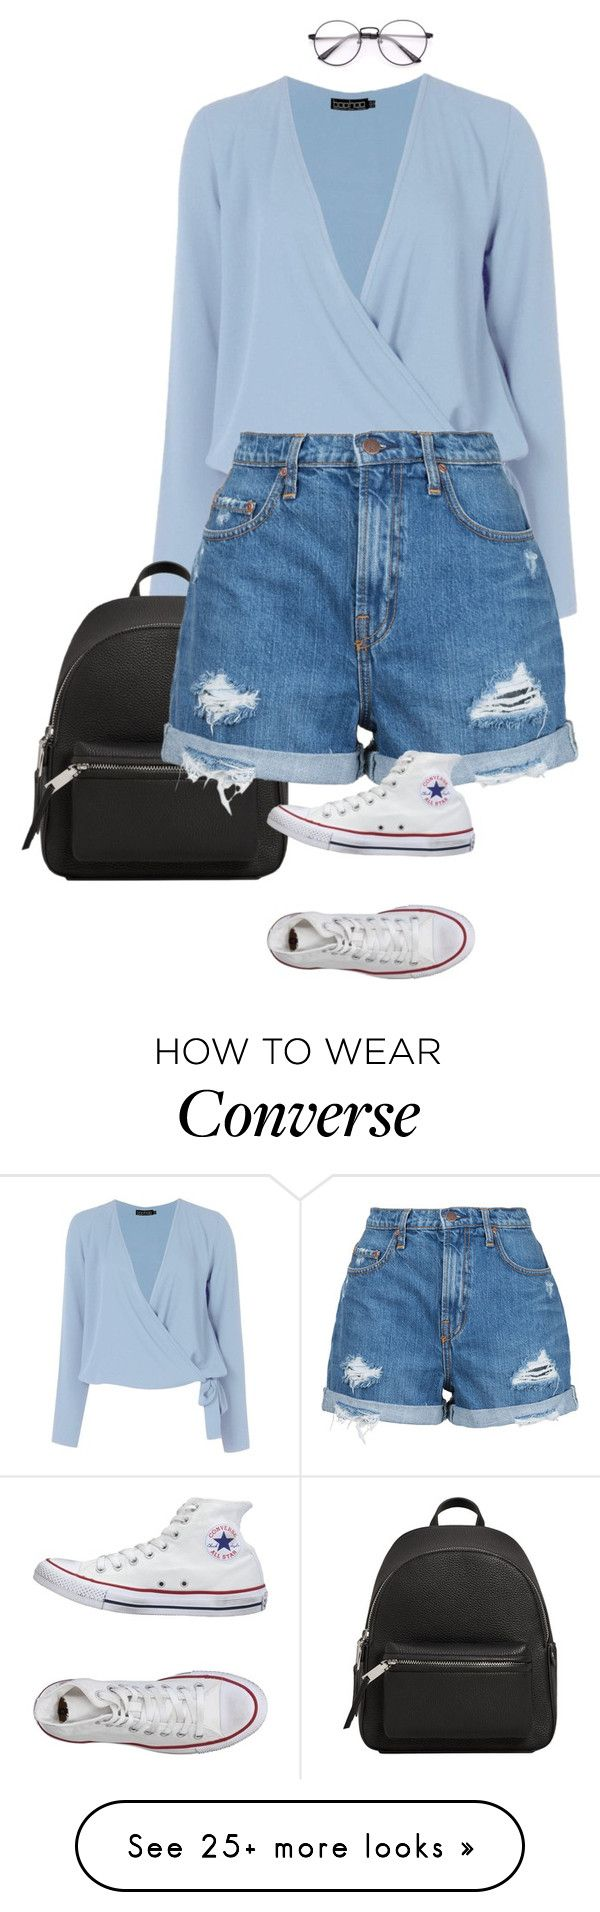 """Bez tytułu #376"" by wiktoria-duszynska on Polyvore featuring Boohoo, MANGO, Nobody Denim and Converse"